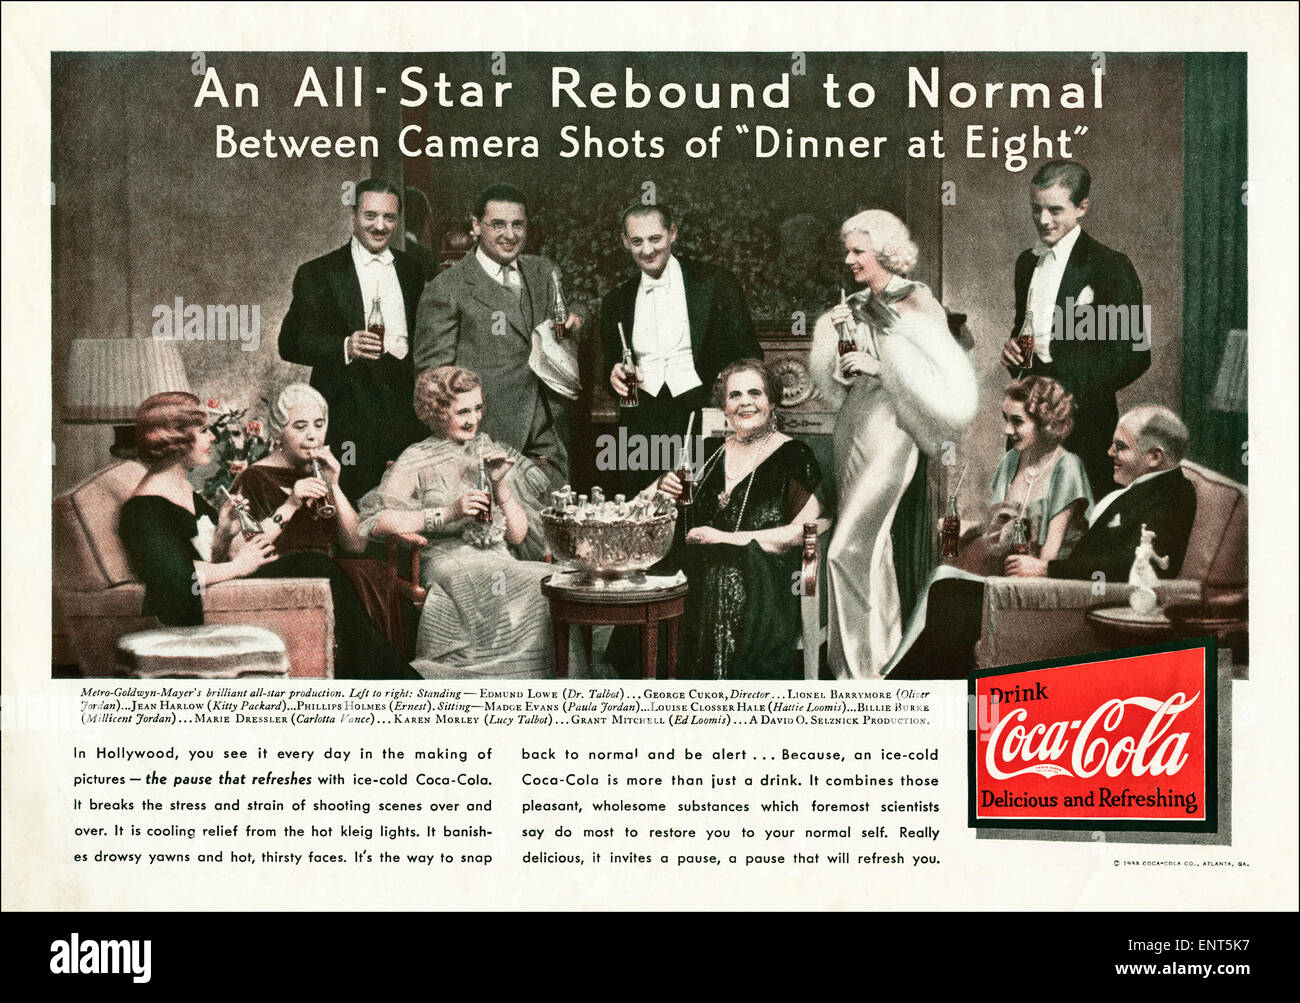 Vintage advert in 1930s American magazine dated November 1933 for COCA COLA featuring film stars of the period - Stock Image